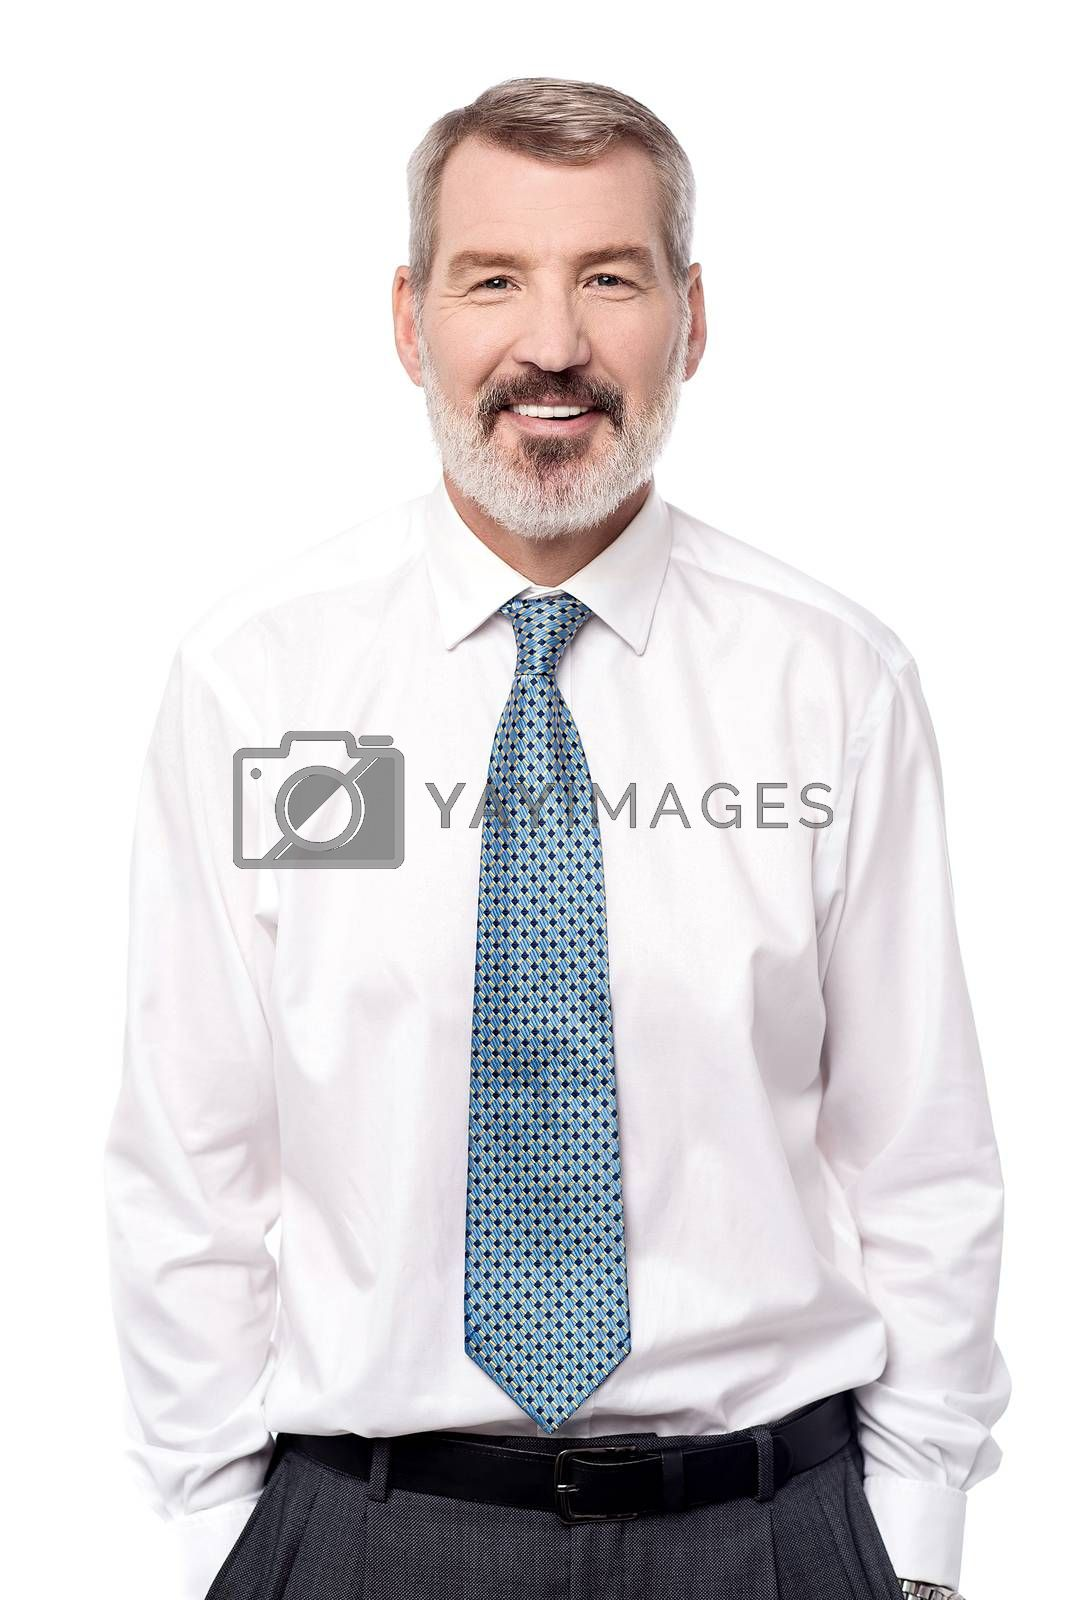 Smiling corporate male with hands in pockets